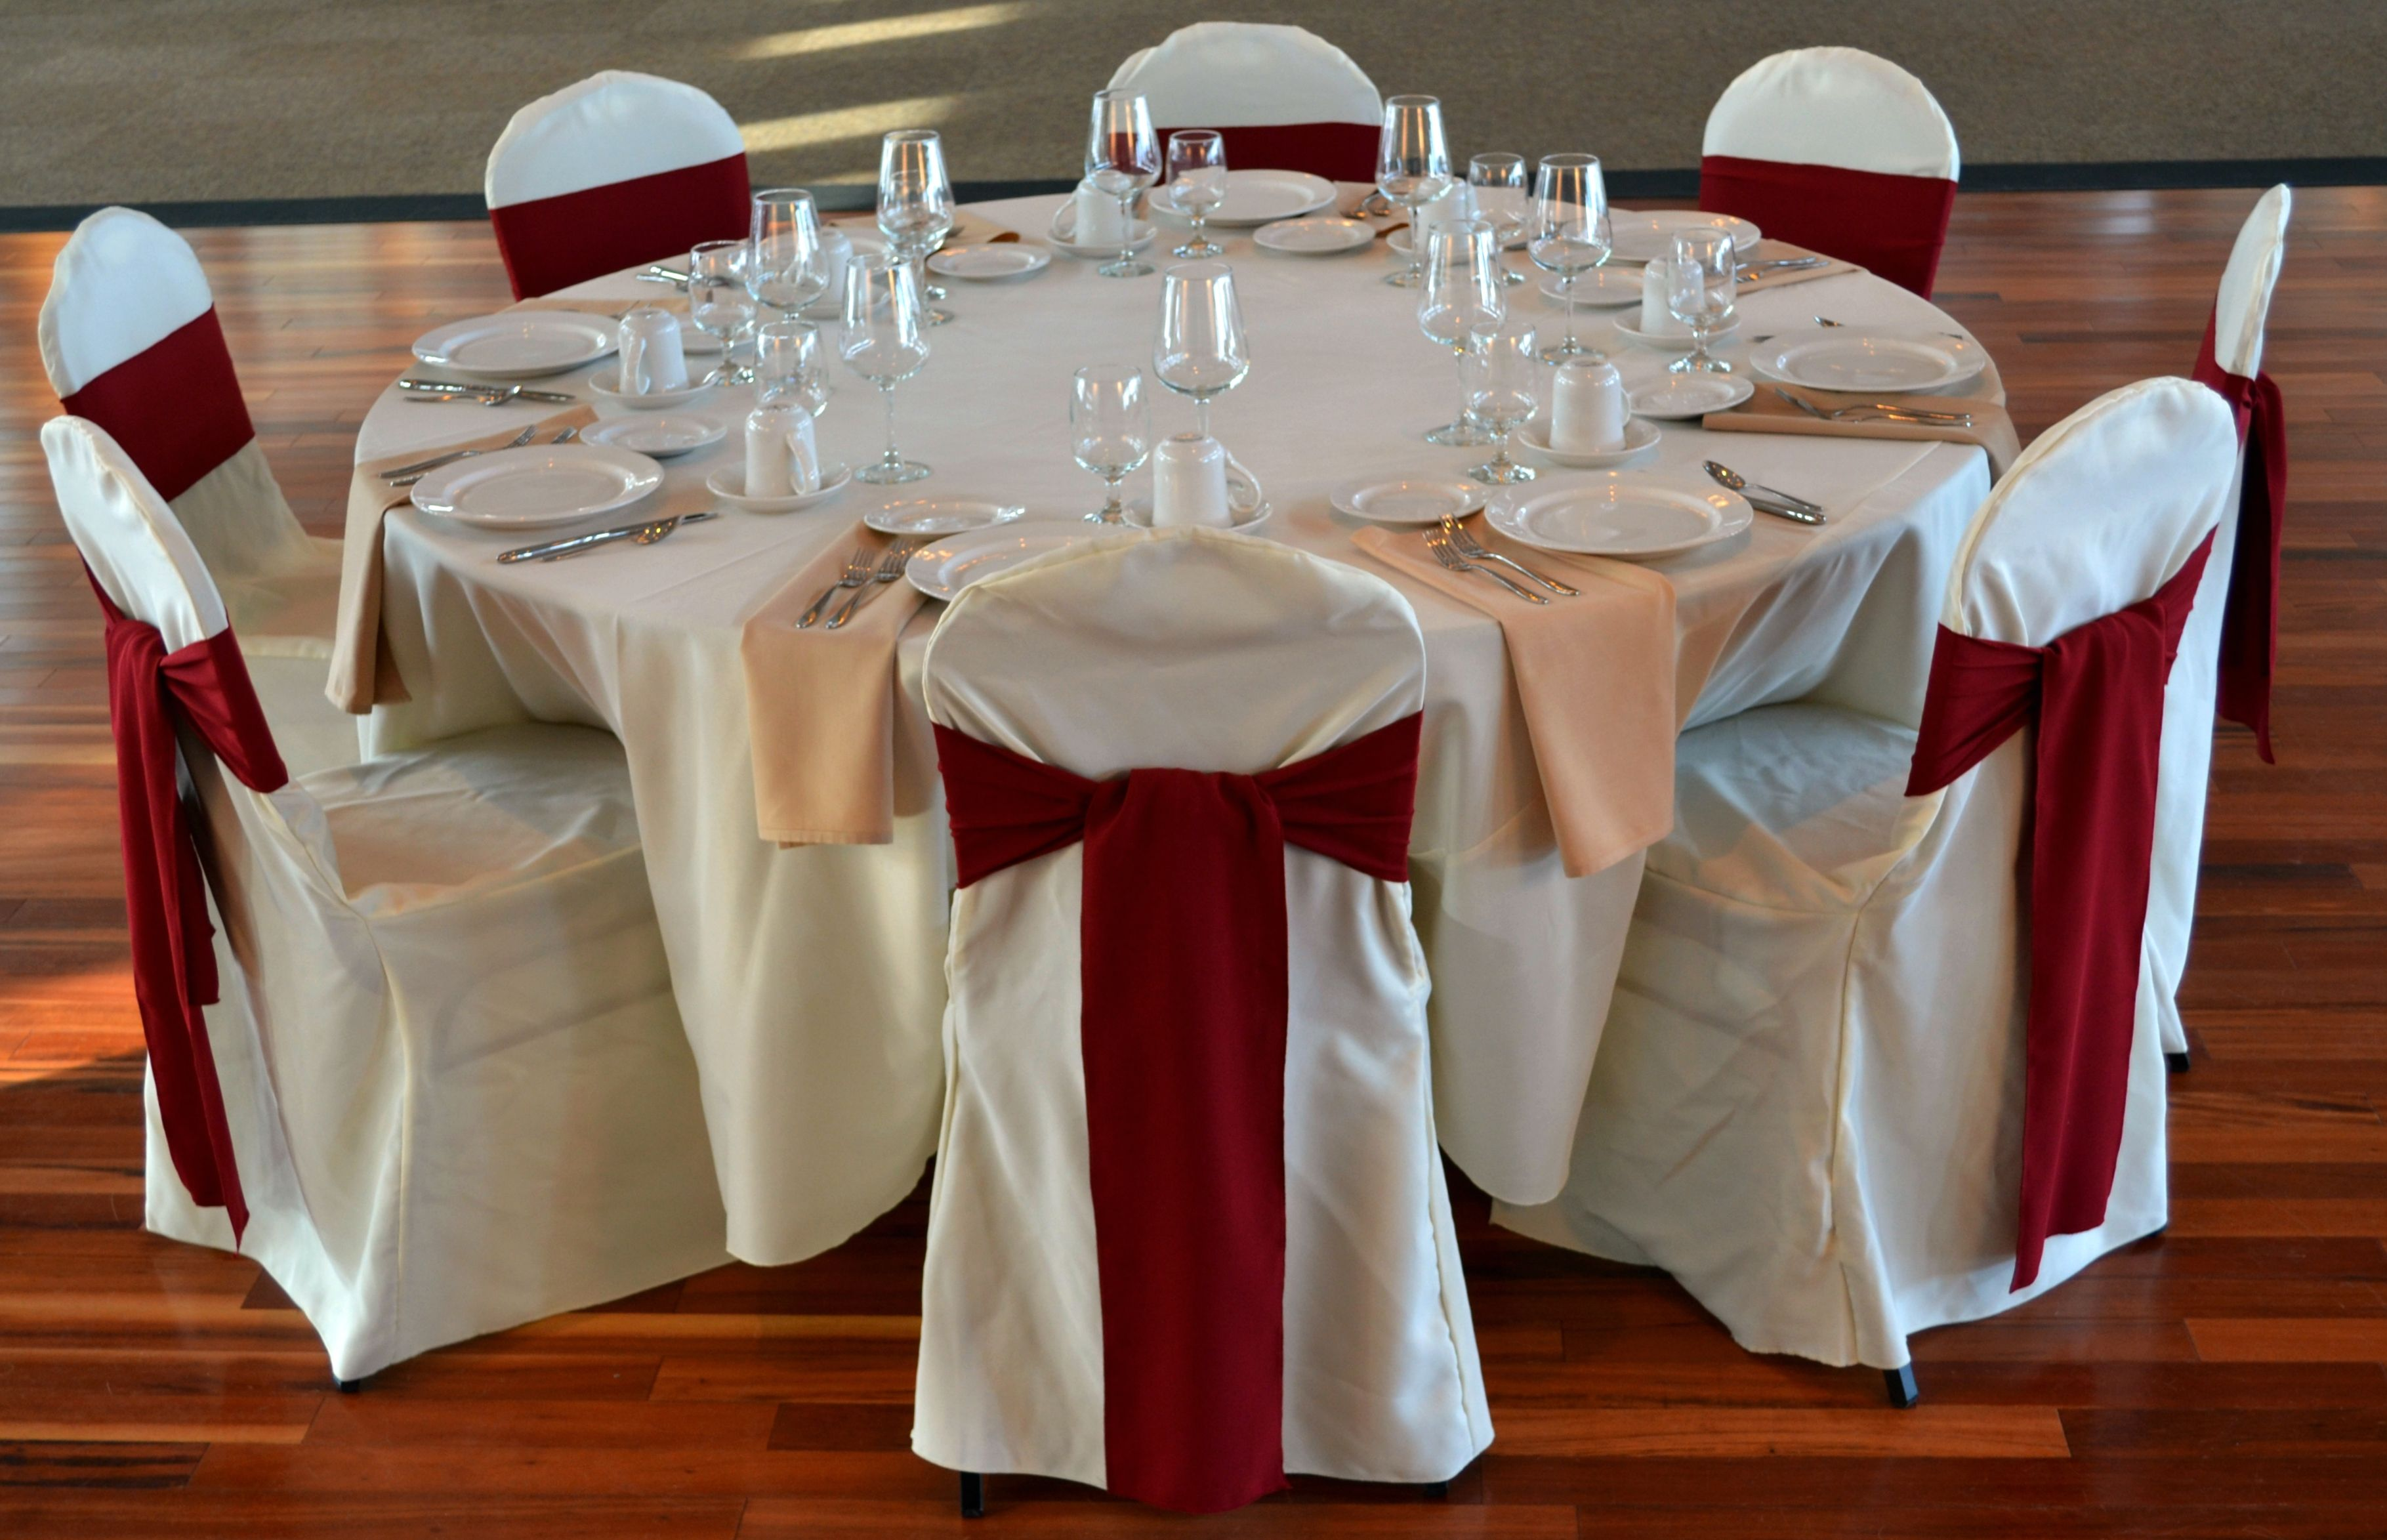 Burgundy Chair Covers Wedding Pads For Rocking Chairs Ivory Linens With Sash And Sandalwood Napkin Make